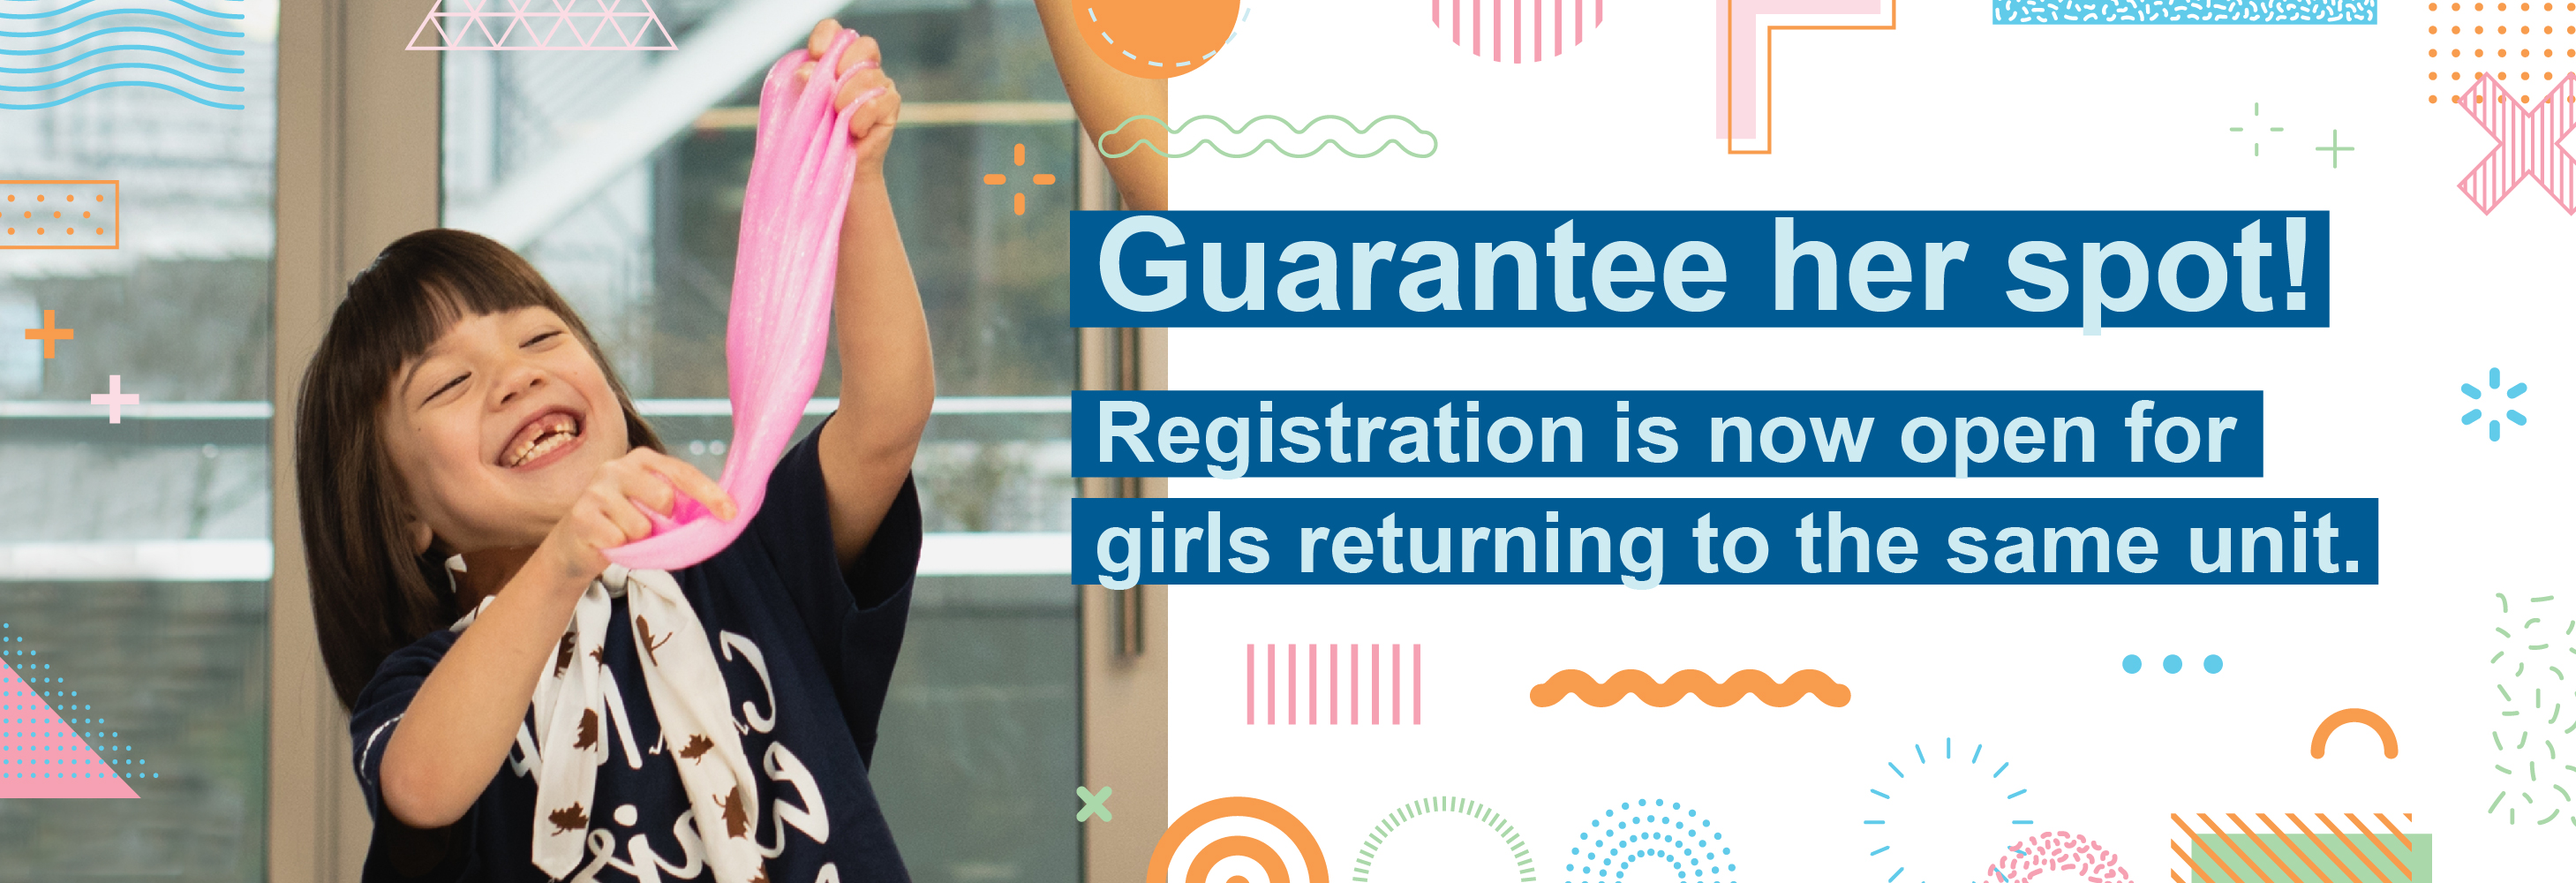 Registration is now open for girls returning to the same unit